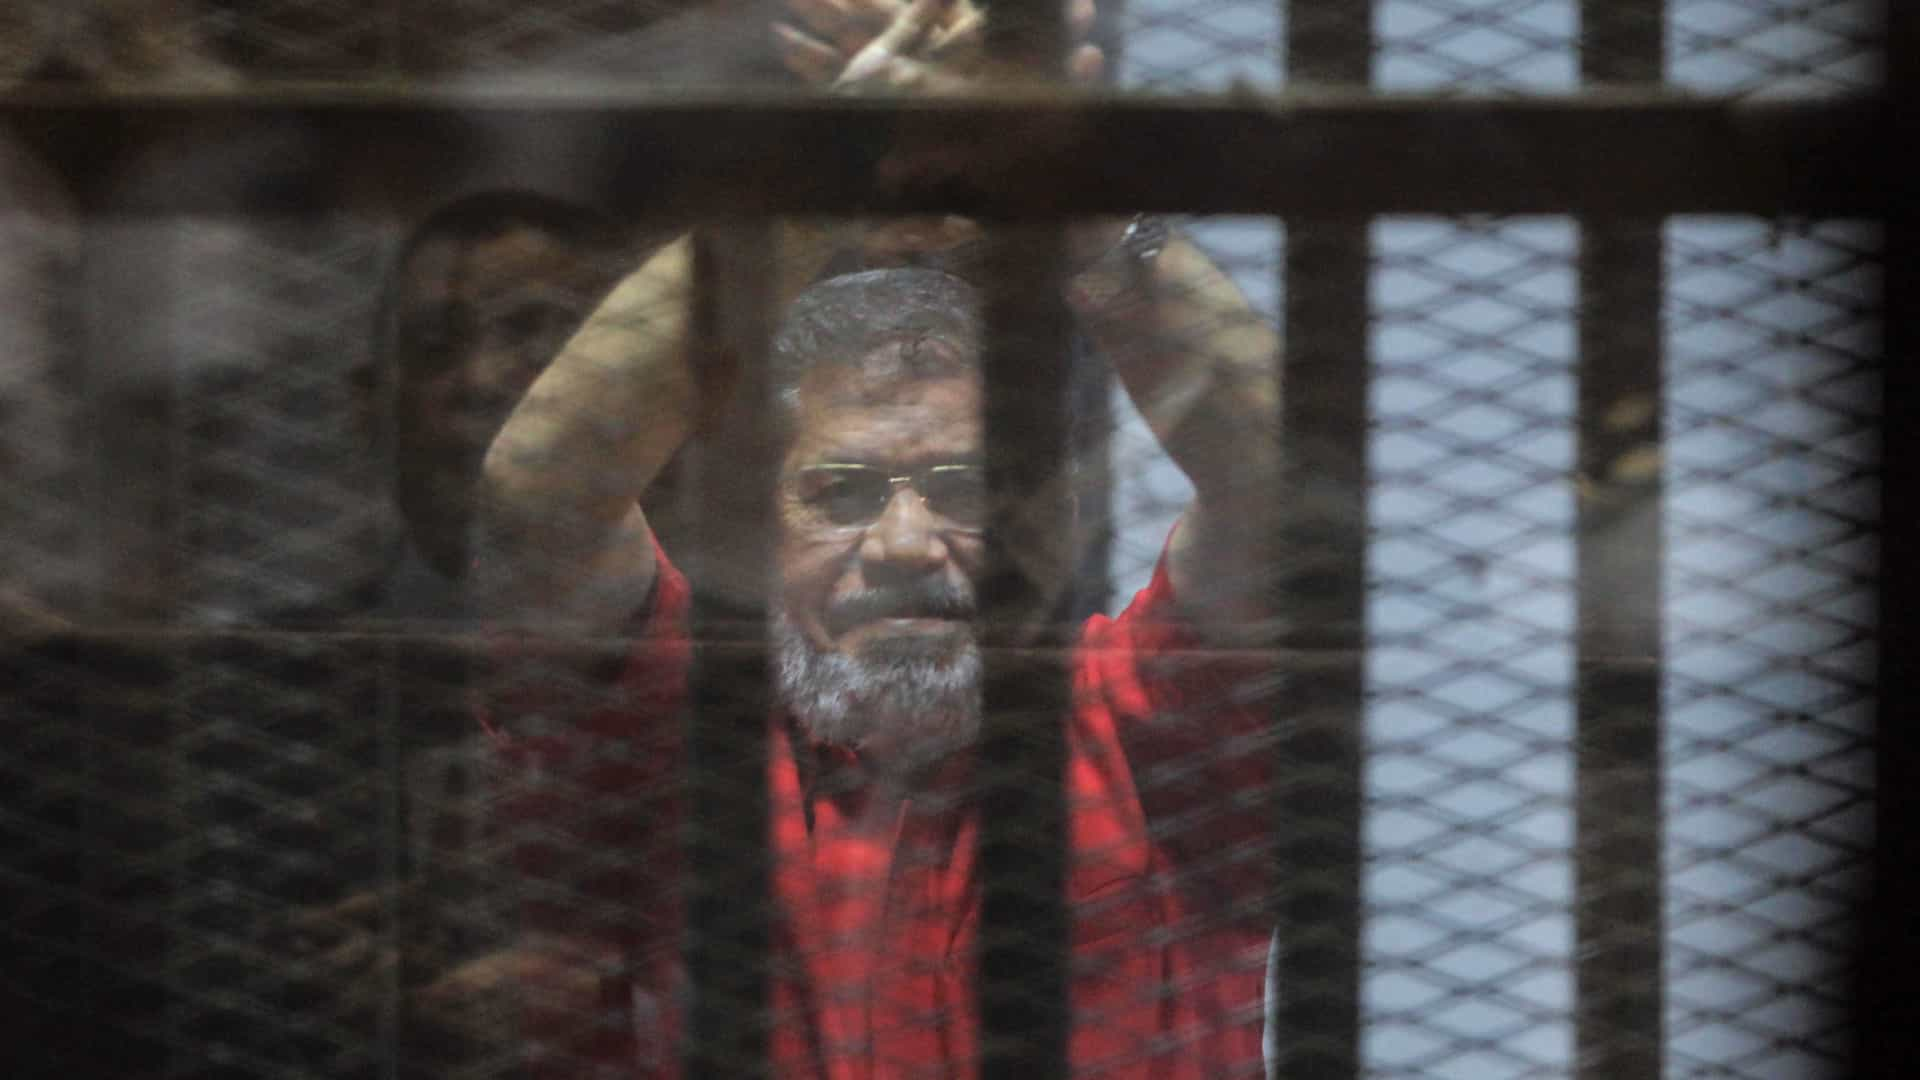 Human Rights Watch denuncia isolamento do ex-Presidente Morsi